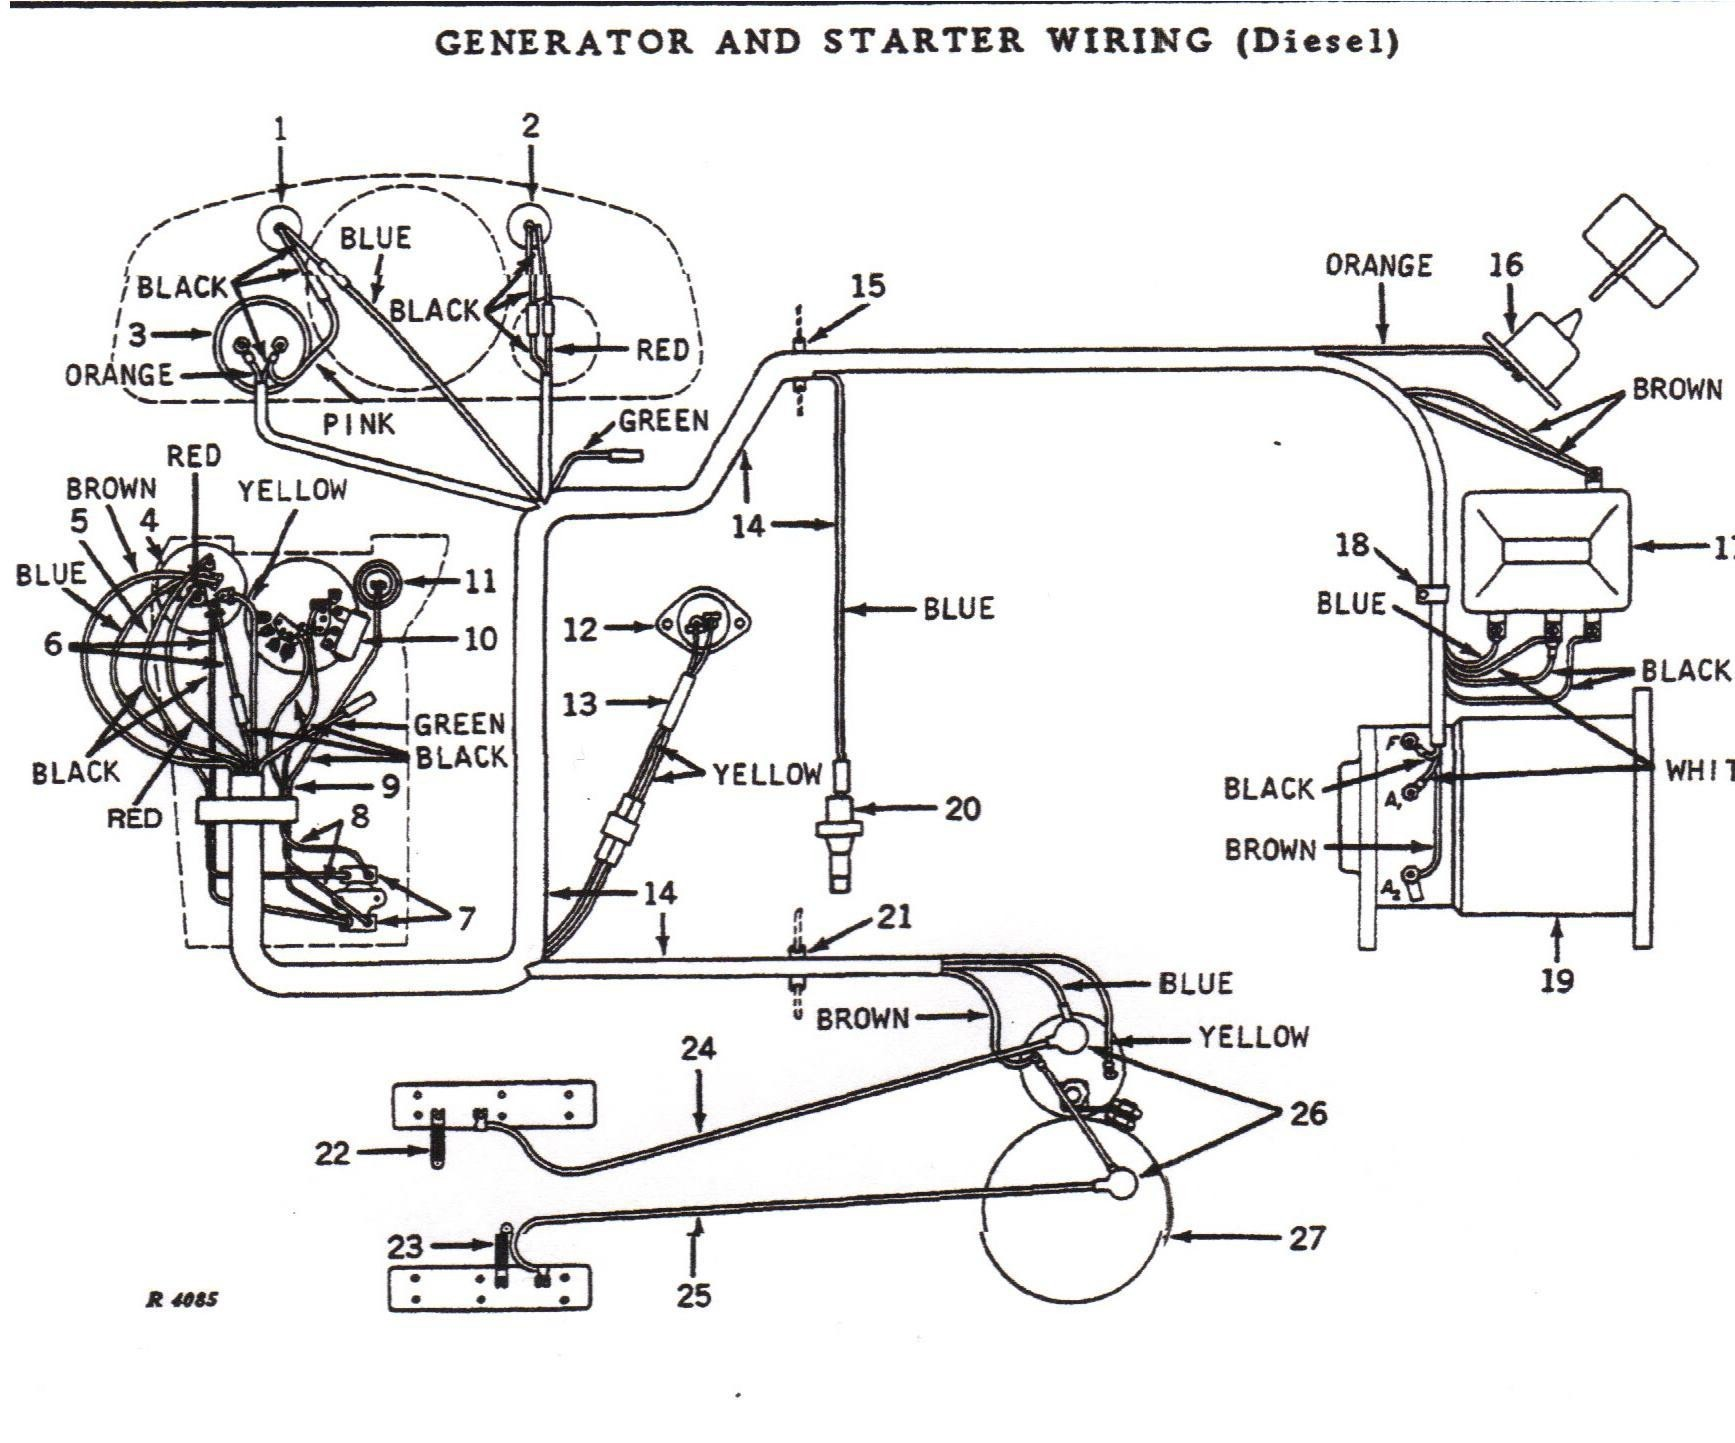 john deere 955 wiring harness wiring diagram  john deere wiring harness diagram #6